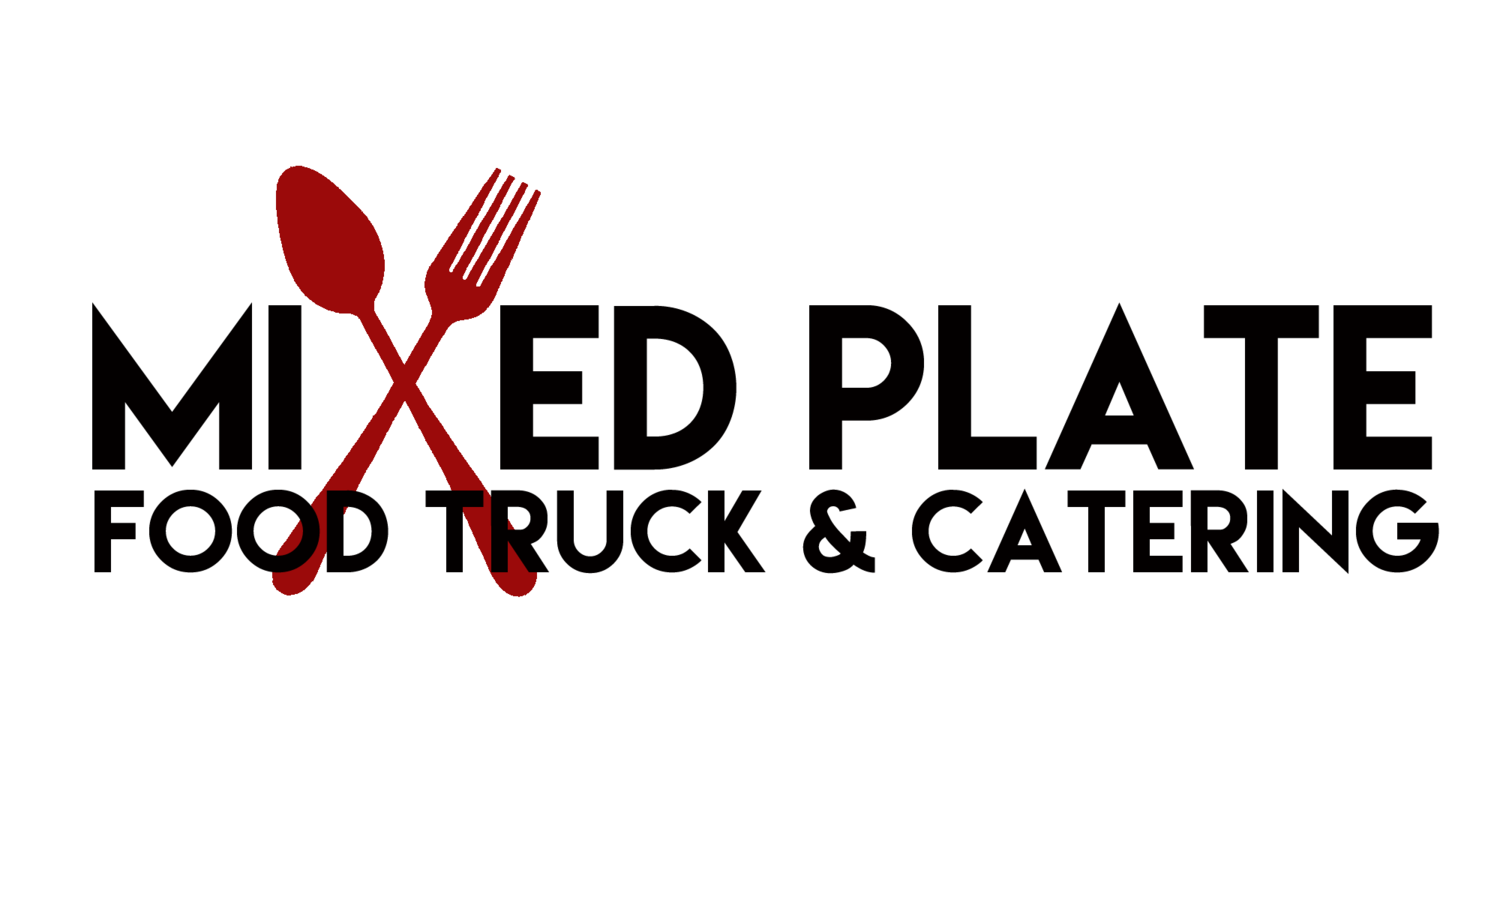 Mixed Plate Food Truck & Catering